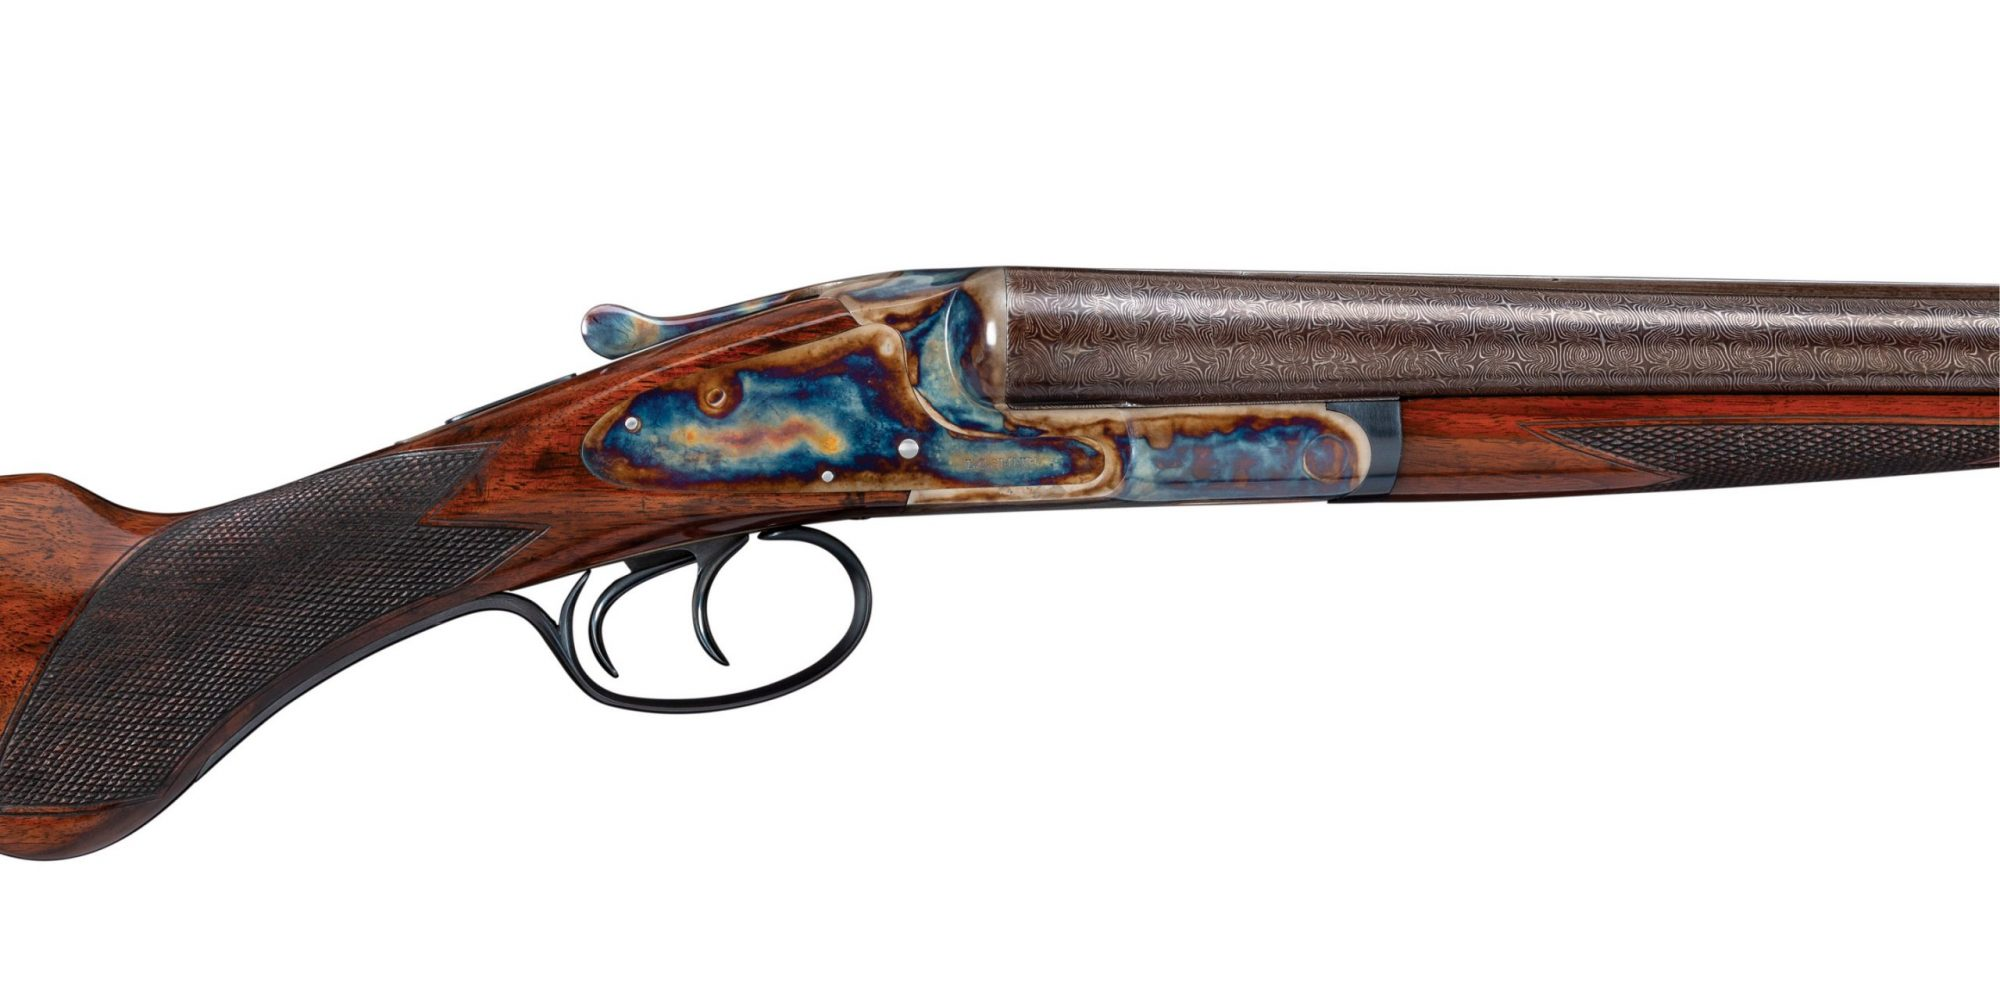 Photo of a restored L.C. Smith 12 gauge shotgun, after restoration work by Turnbull Restoration of Bloomfield NY